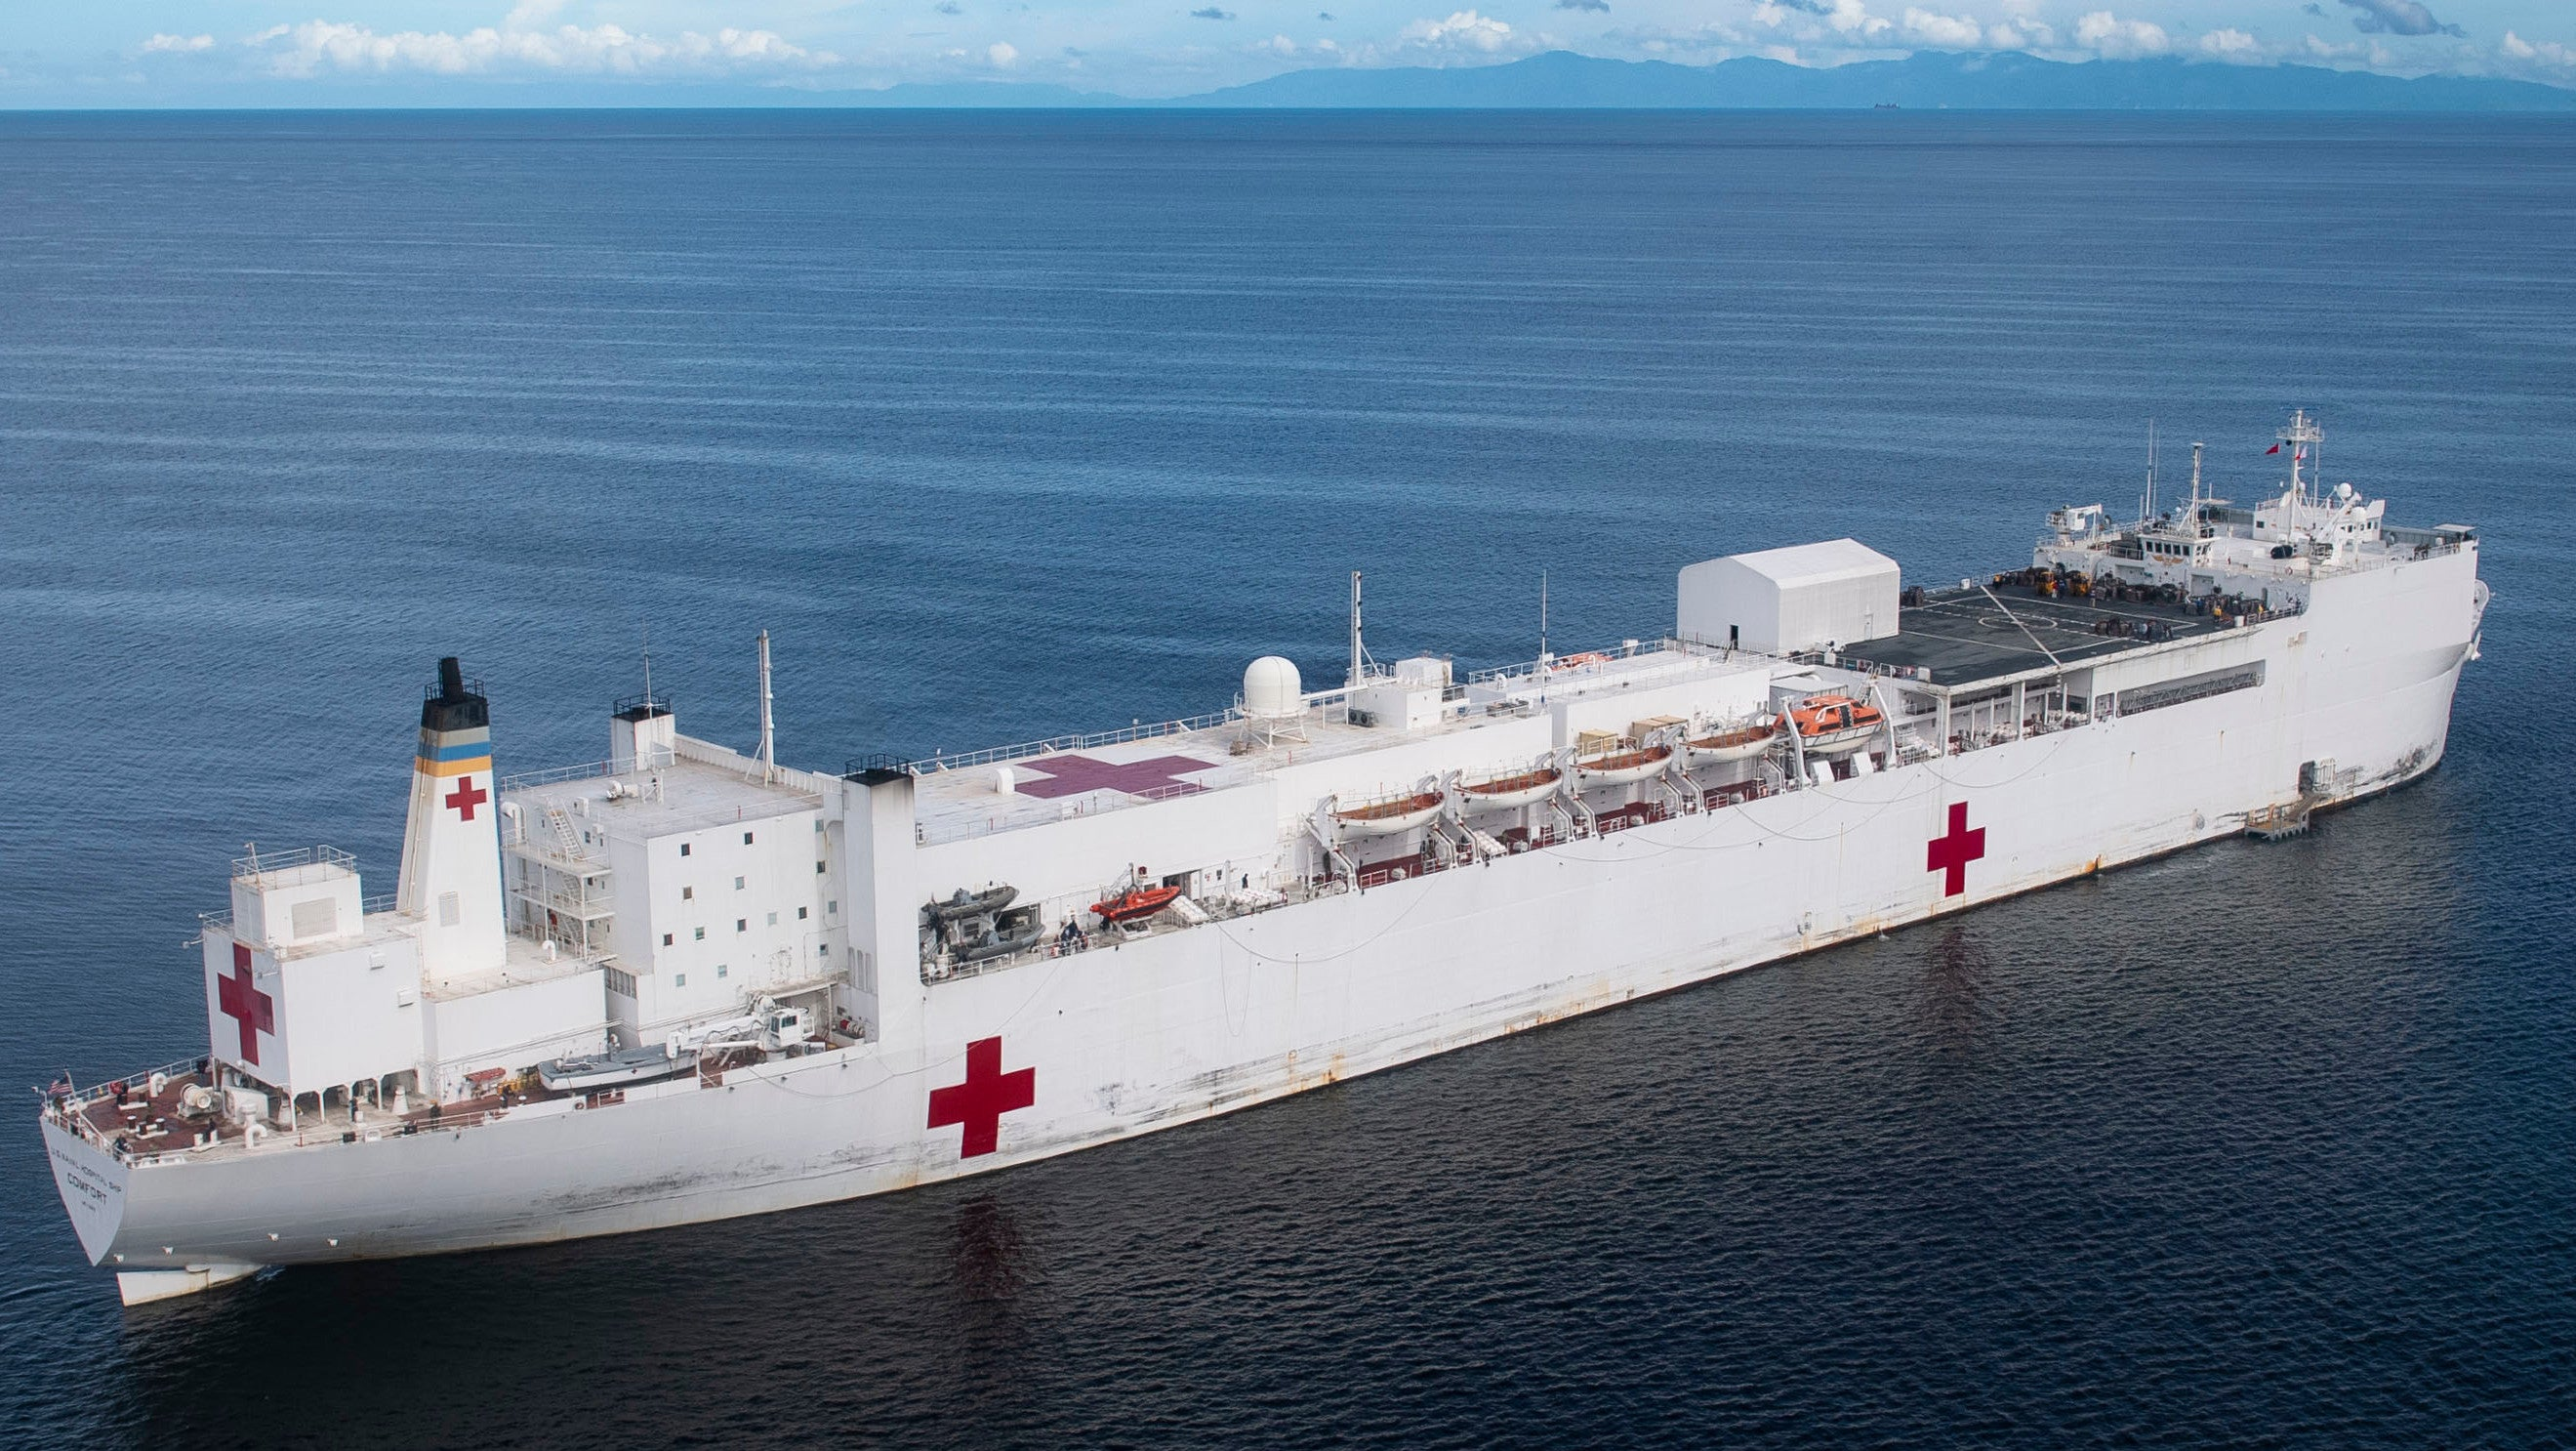 The World's Biggest Hospital Ship Is Coming To NYC To Help Fight Coronavirus